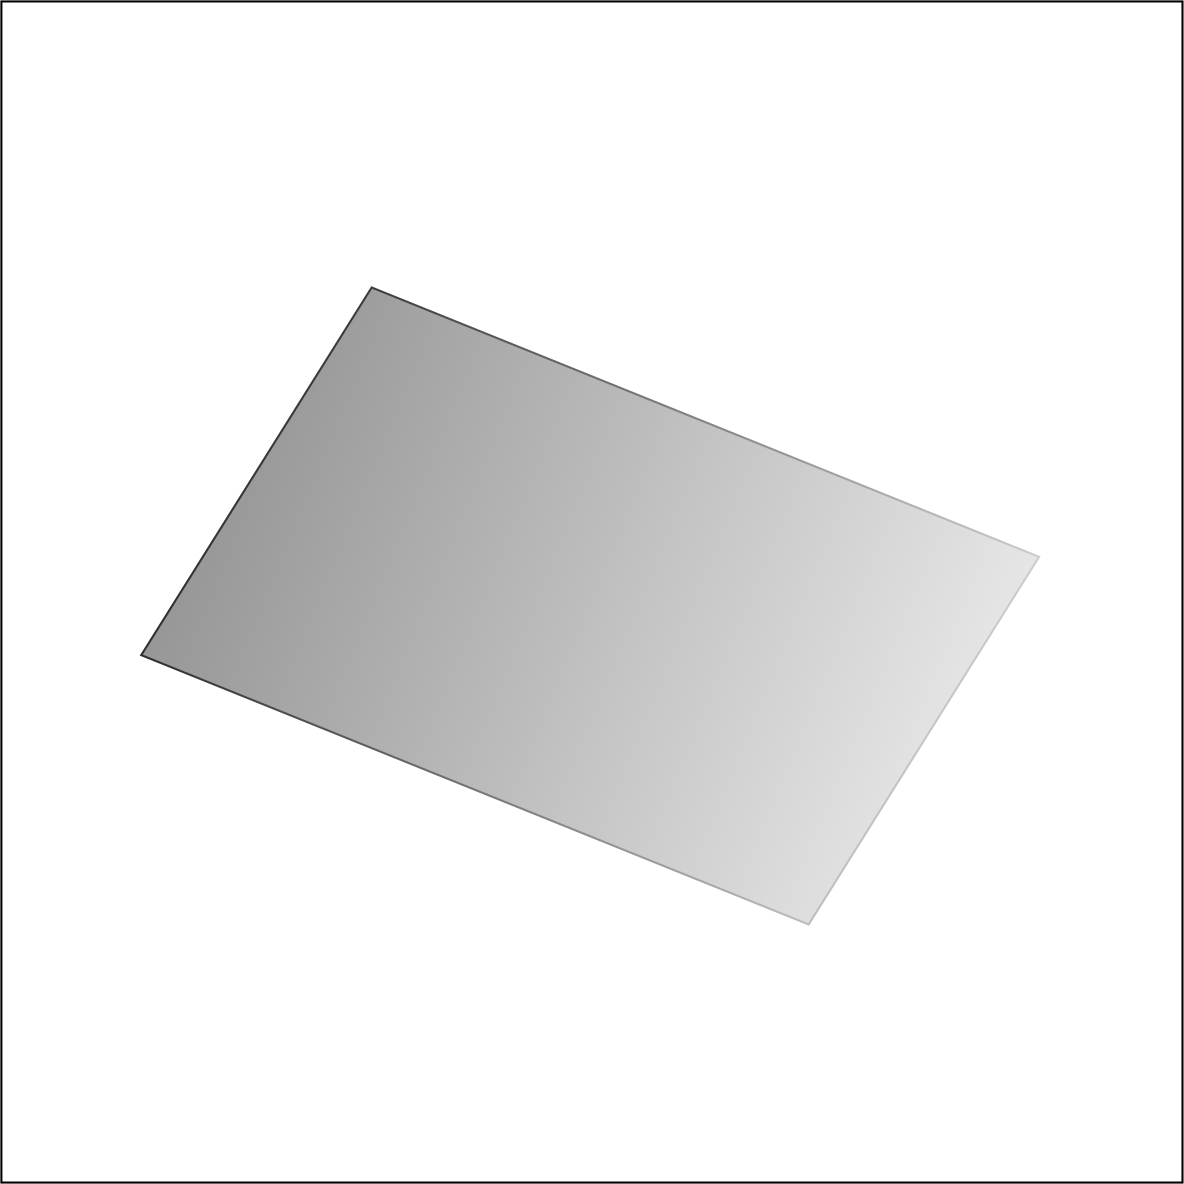 Tiffen ND 3 clear Filter by Accord Equips